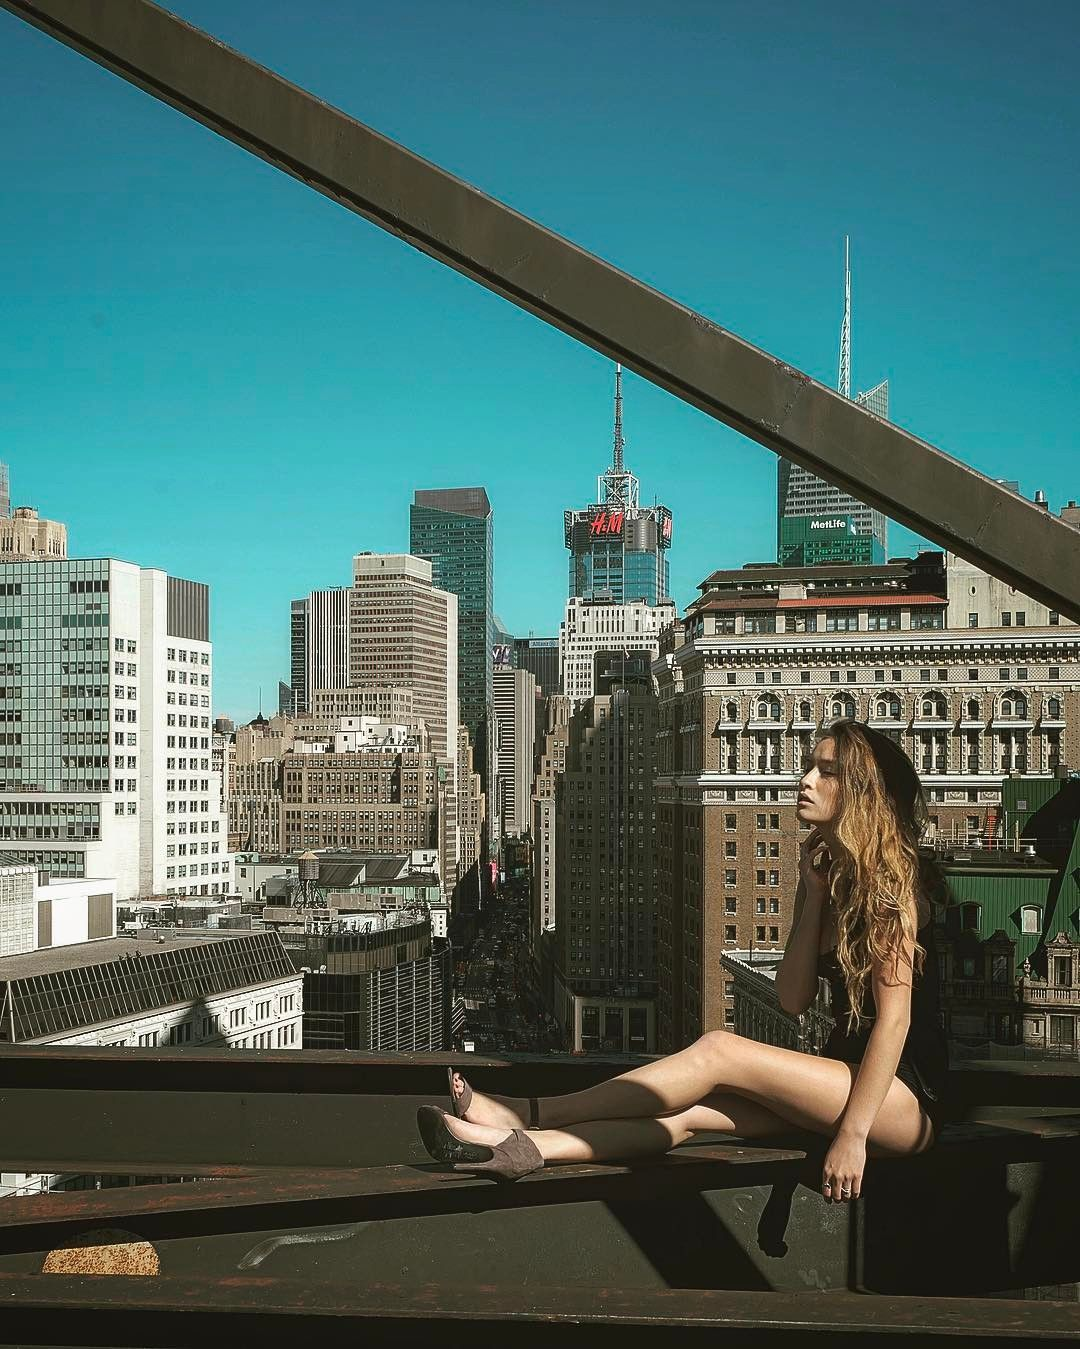 Beauty And NYC Mar Shirasuna Captures Models On Rooftops In New - Epic photos taken from the rooftops offer a new perspective of london